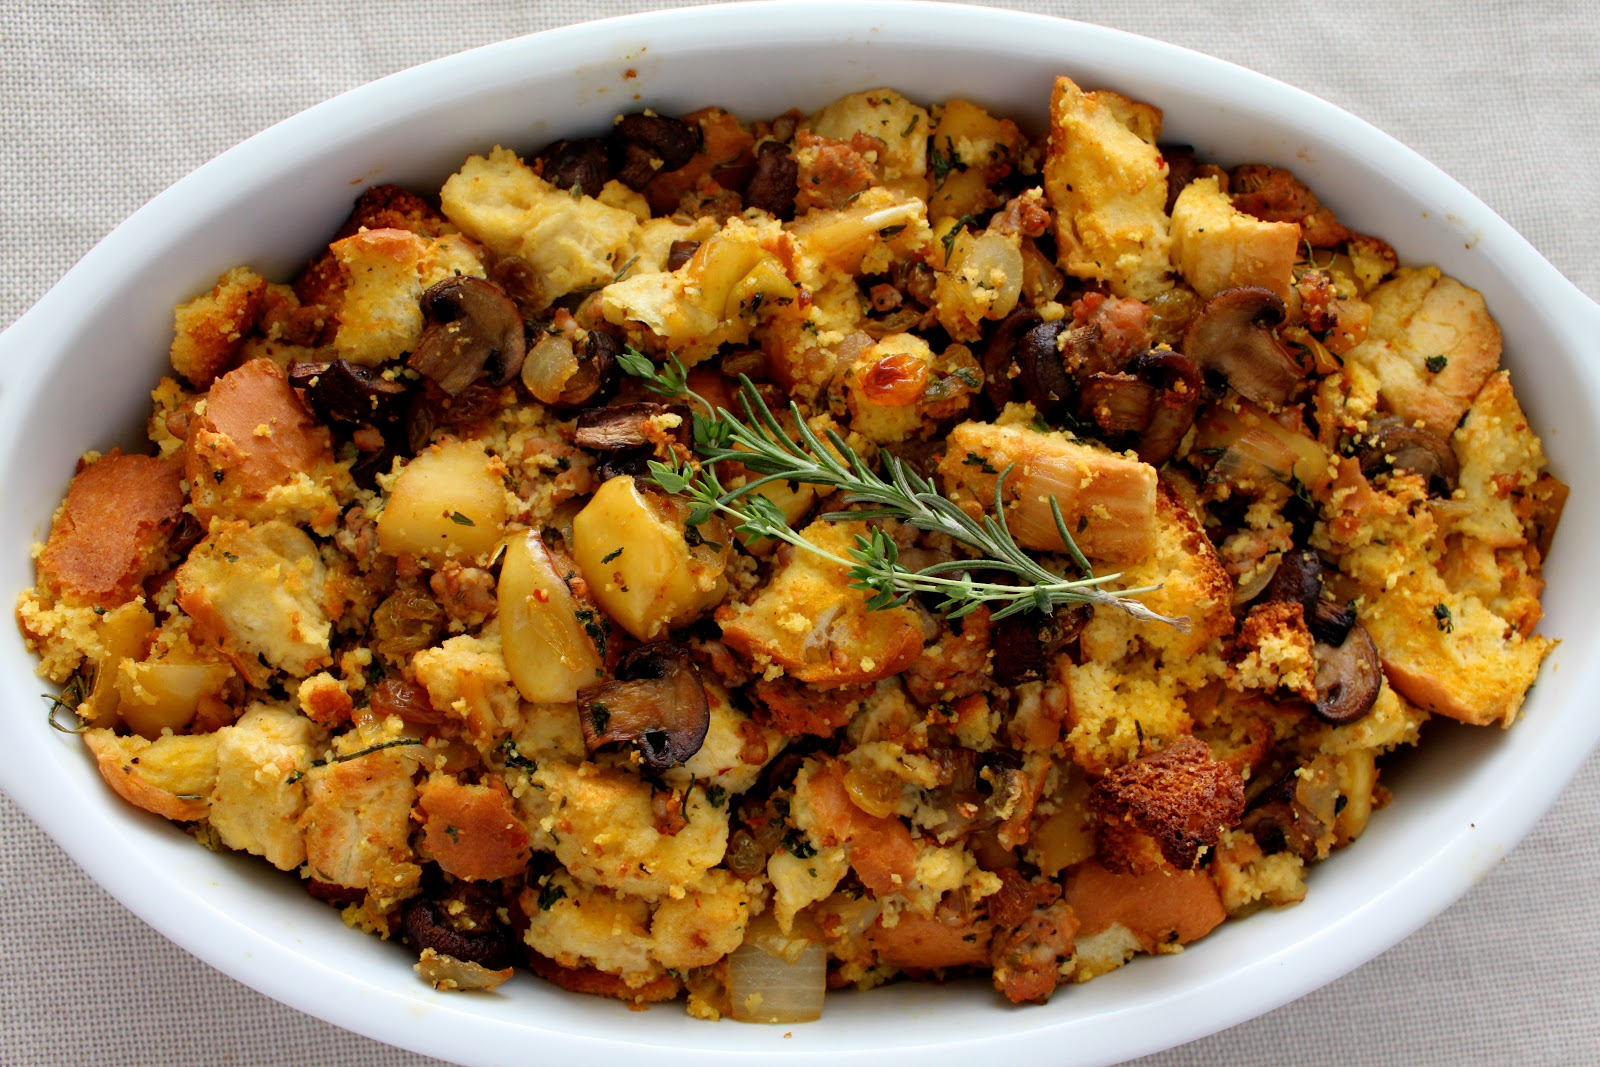 ... Kitchen: Artisan Cornbread Stuffing with Apples and Italian Sausage